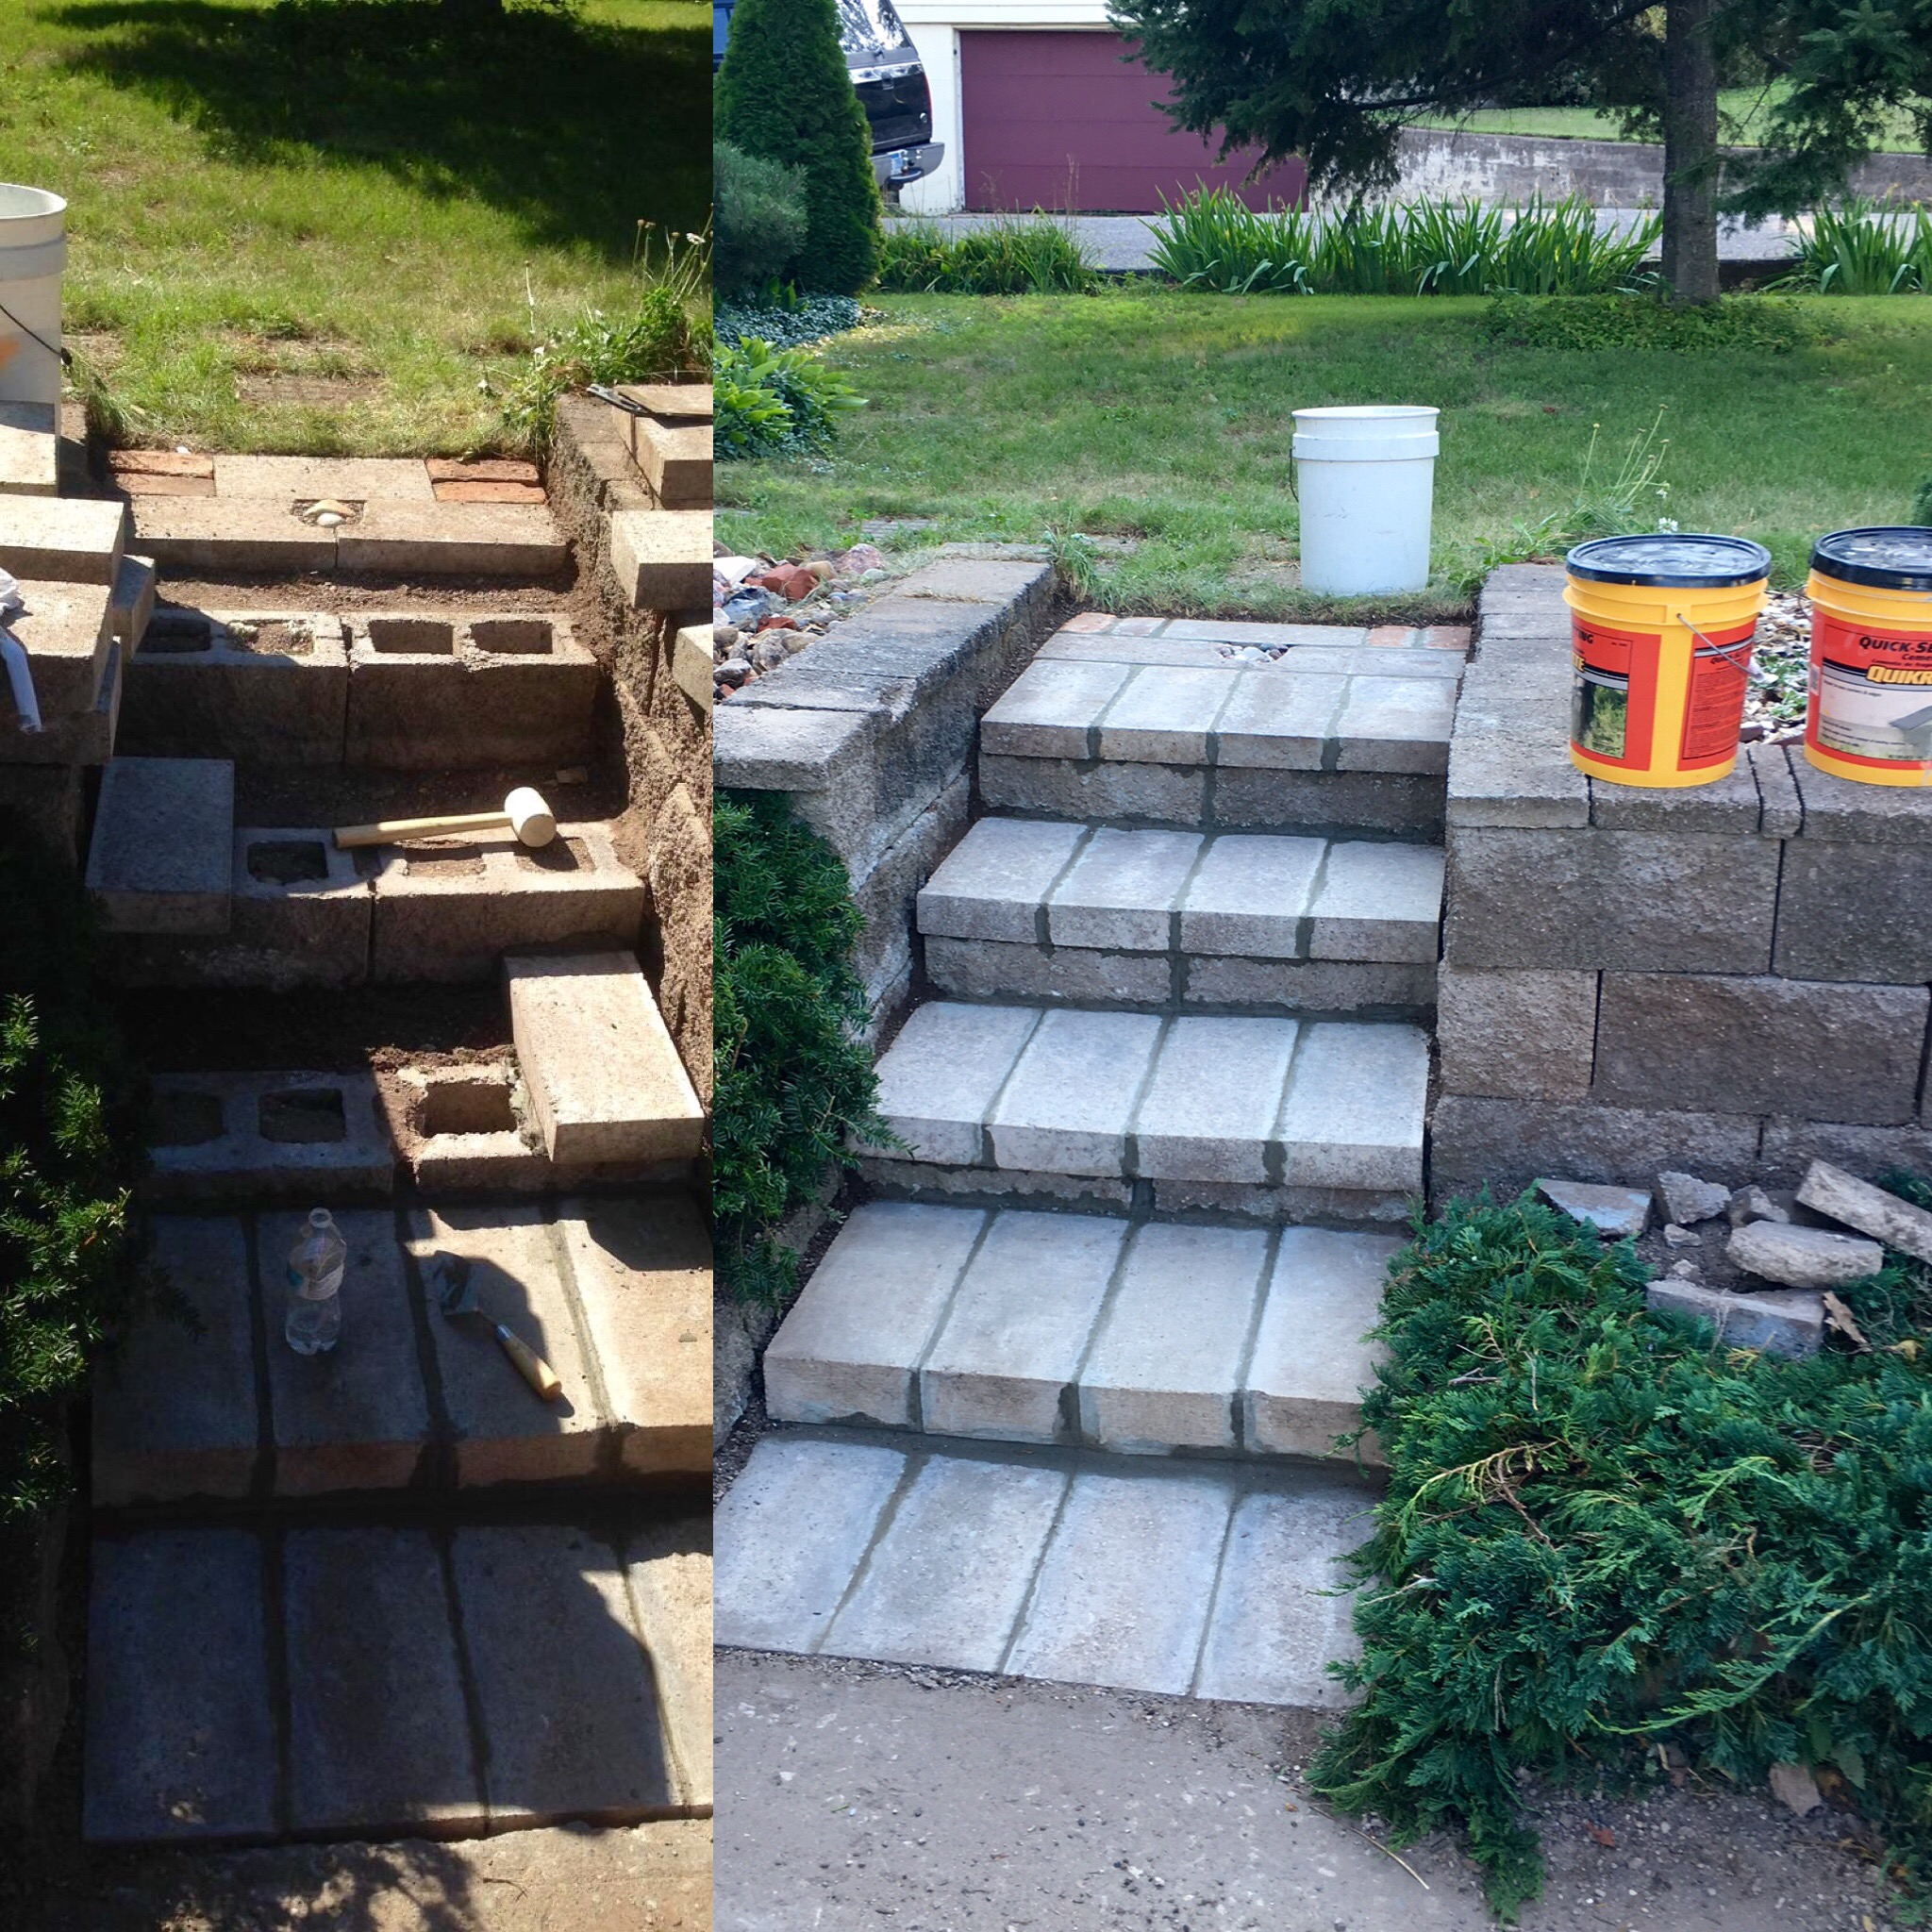 Busy Boys Steps and Retaining Walls